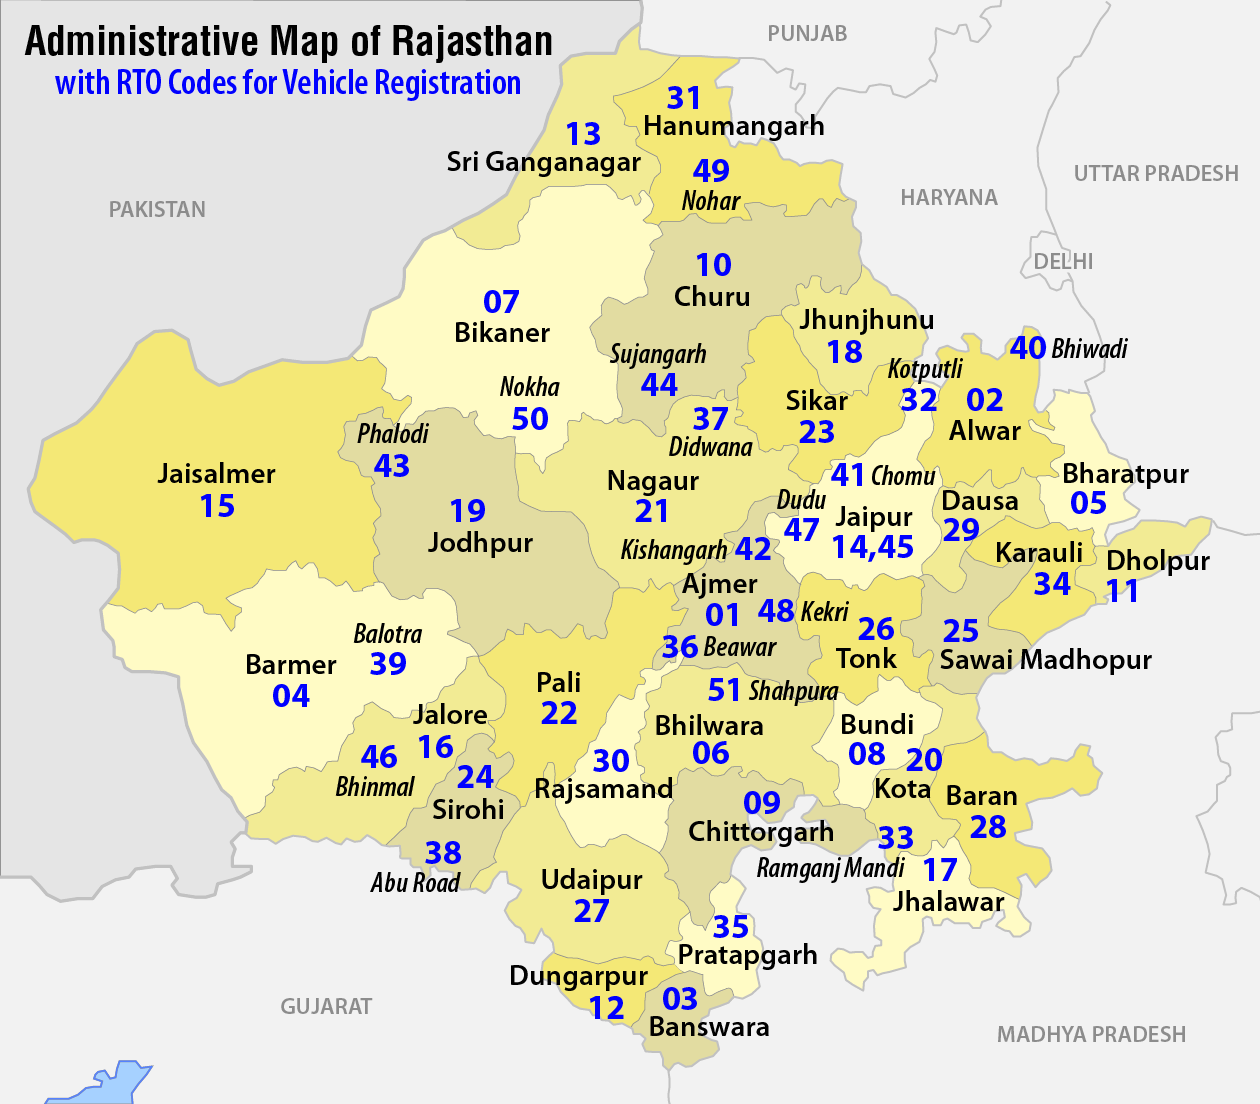 administrative_map_of_rajasthan_with_rto_codes_for_vehicle_registration